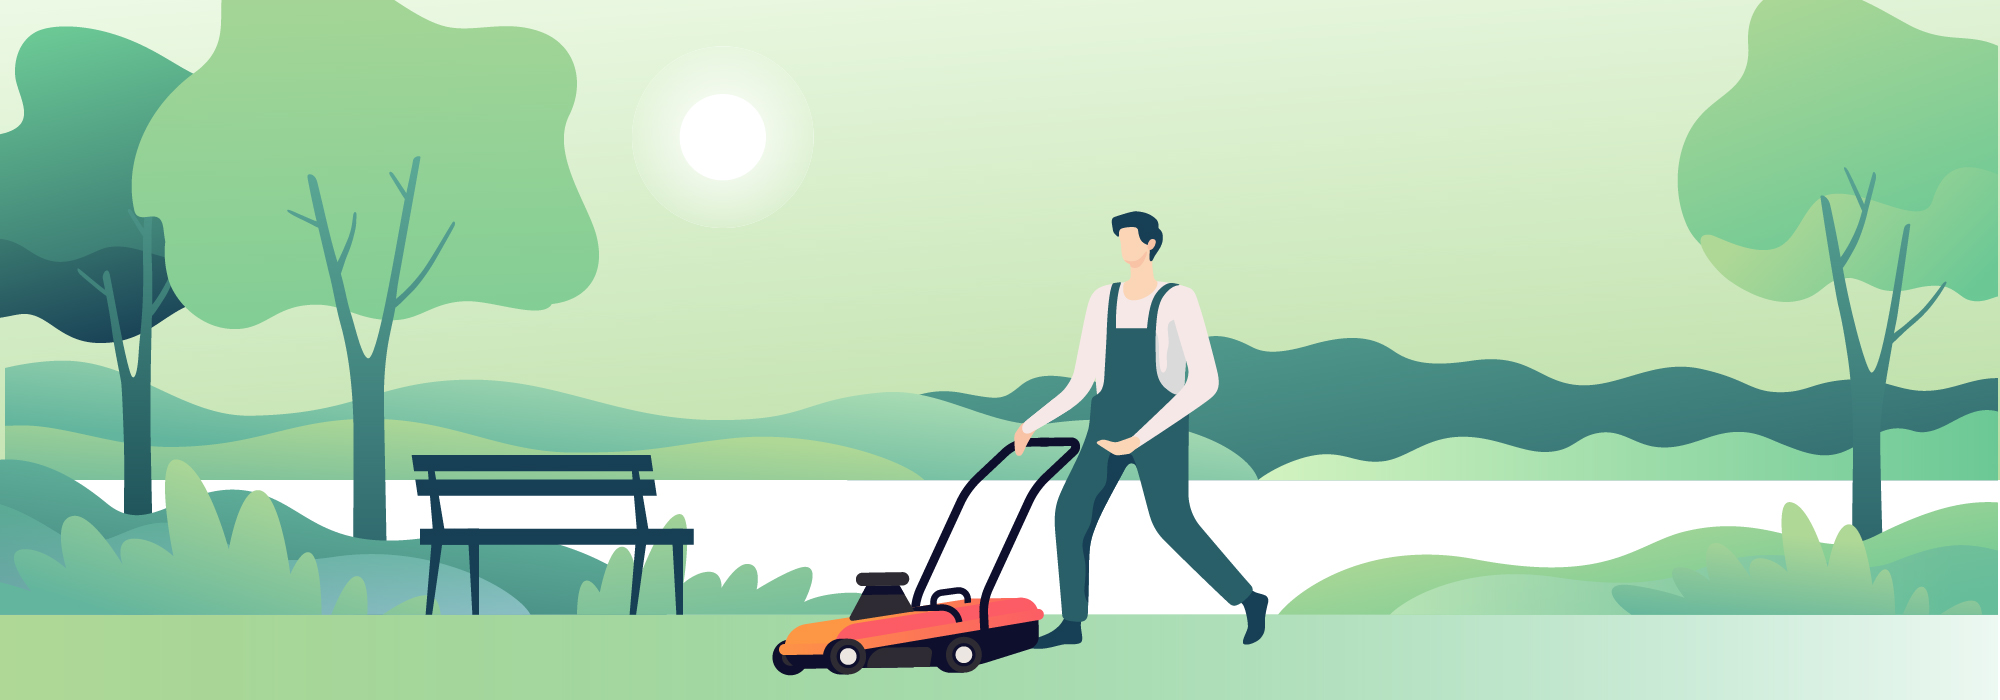 Illustrated scene of man cutting the grass